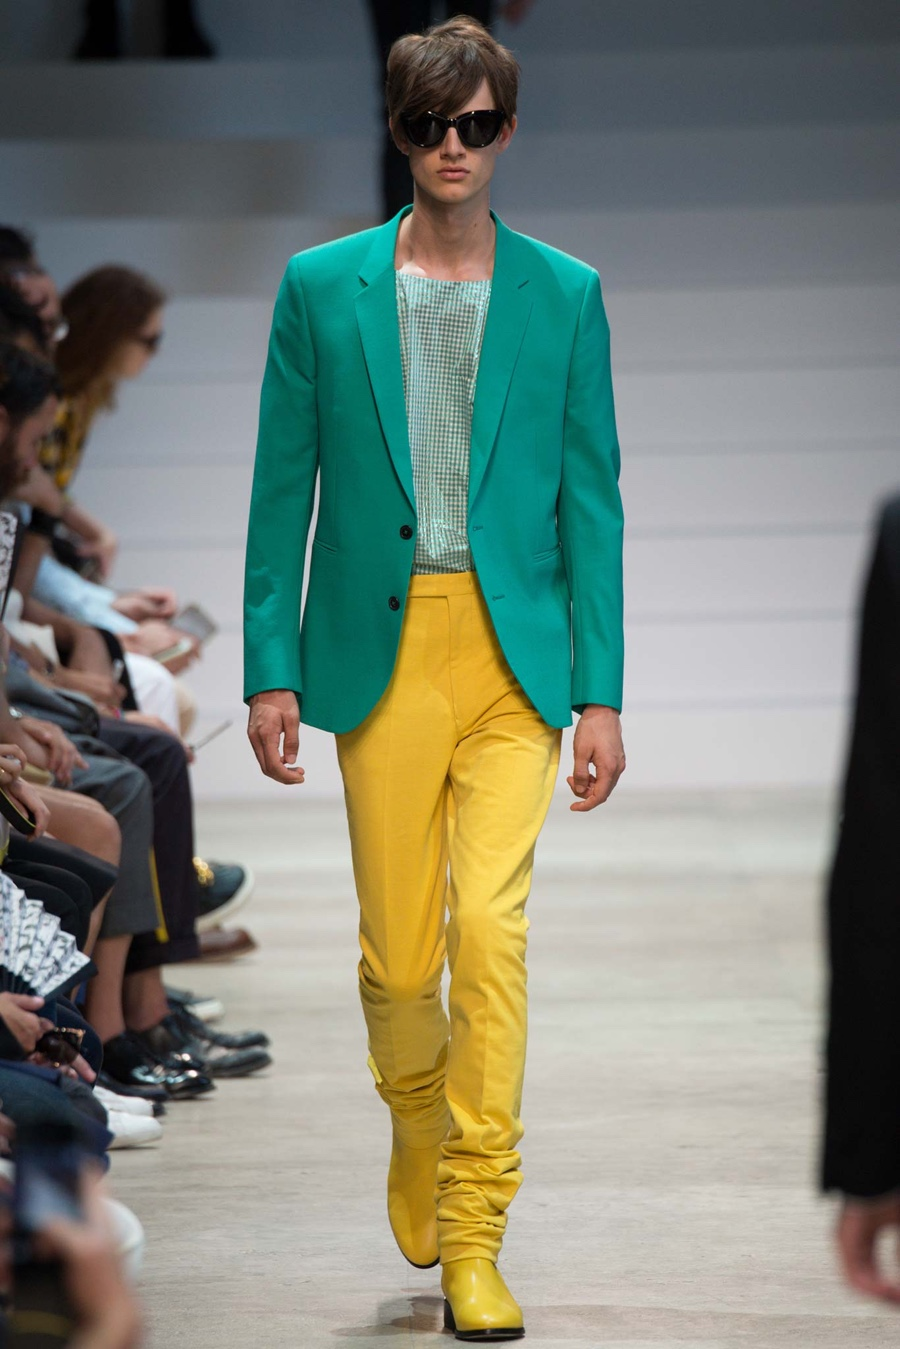 Paul Smith Spring/Summer 2016 Menswear Collection | Paris Fashion Week